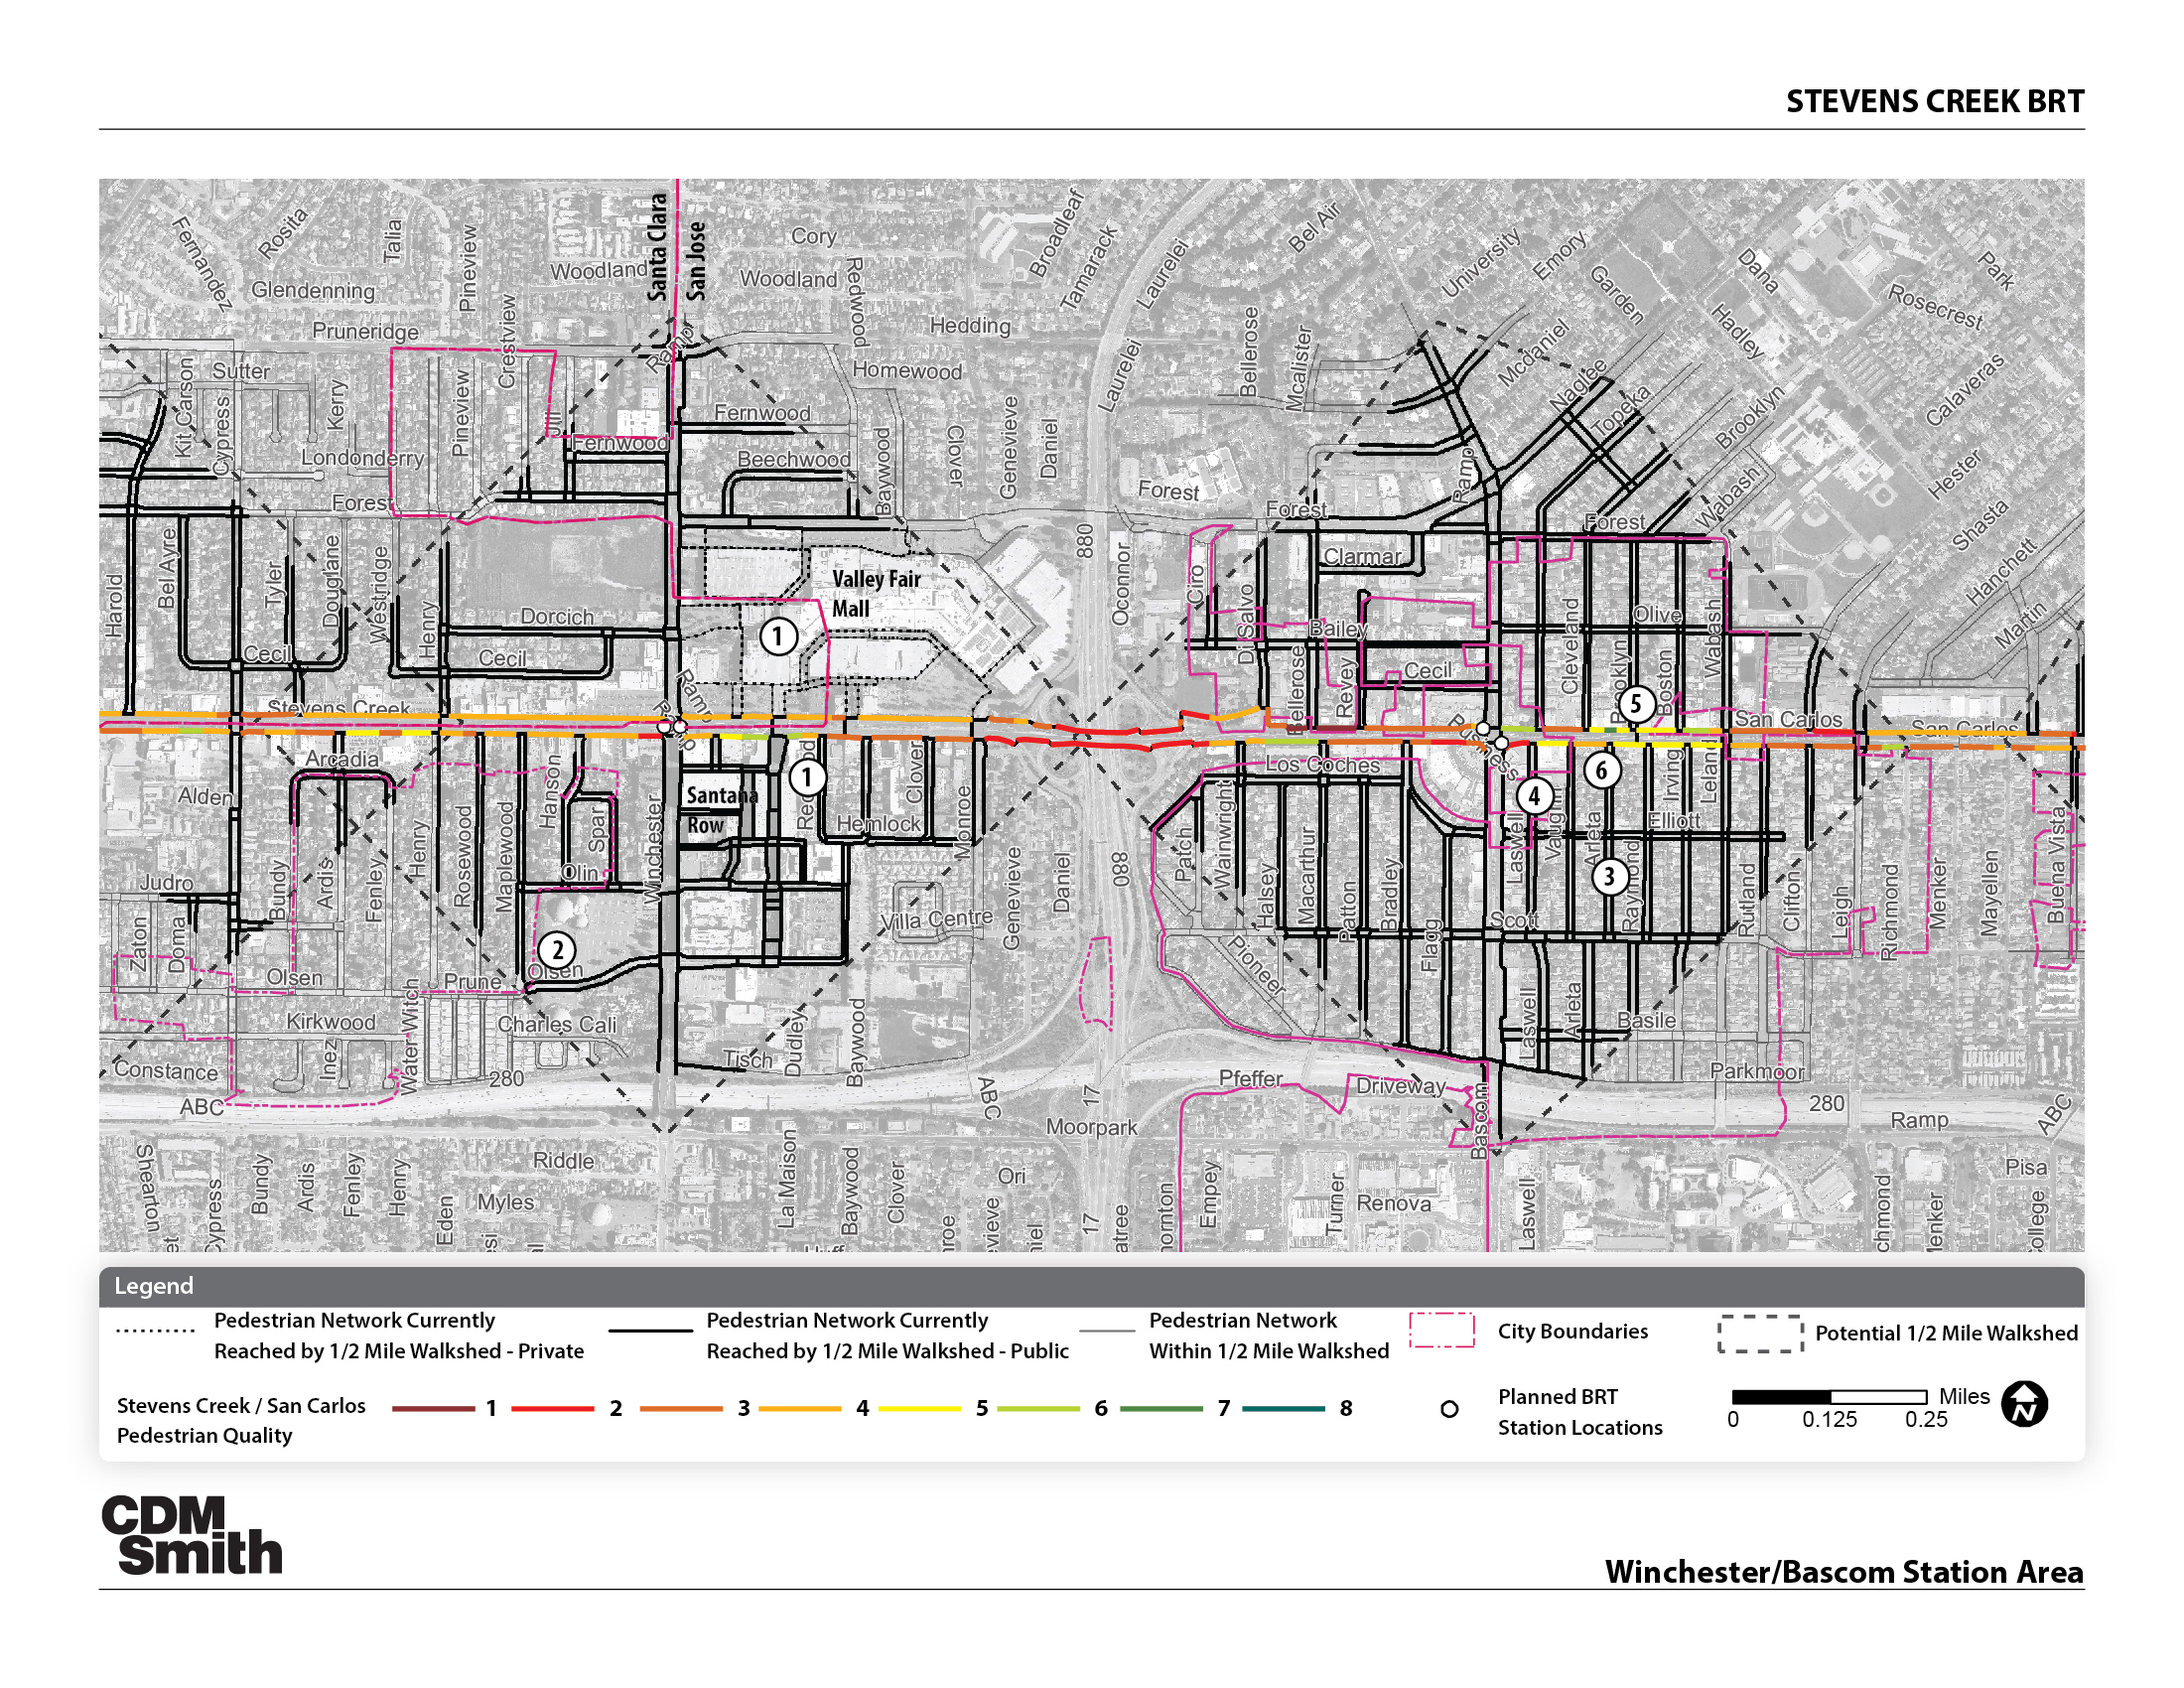 STEVENS CREEK BUS RAPID TRANSIT PLAN